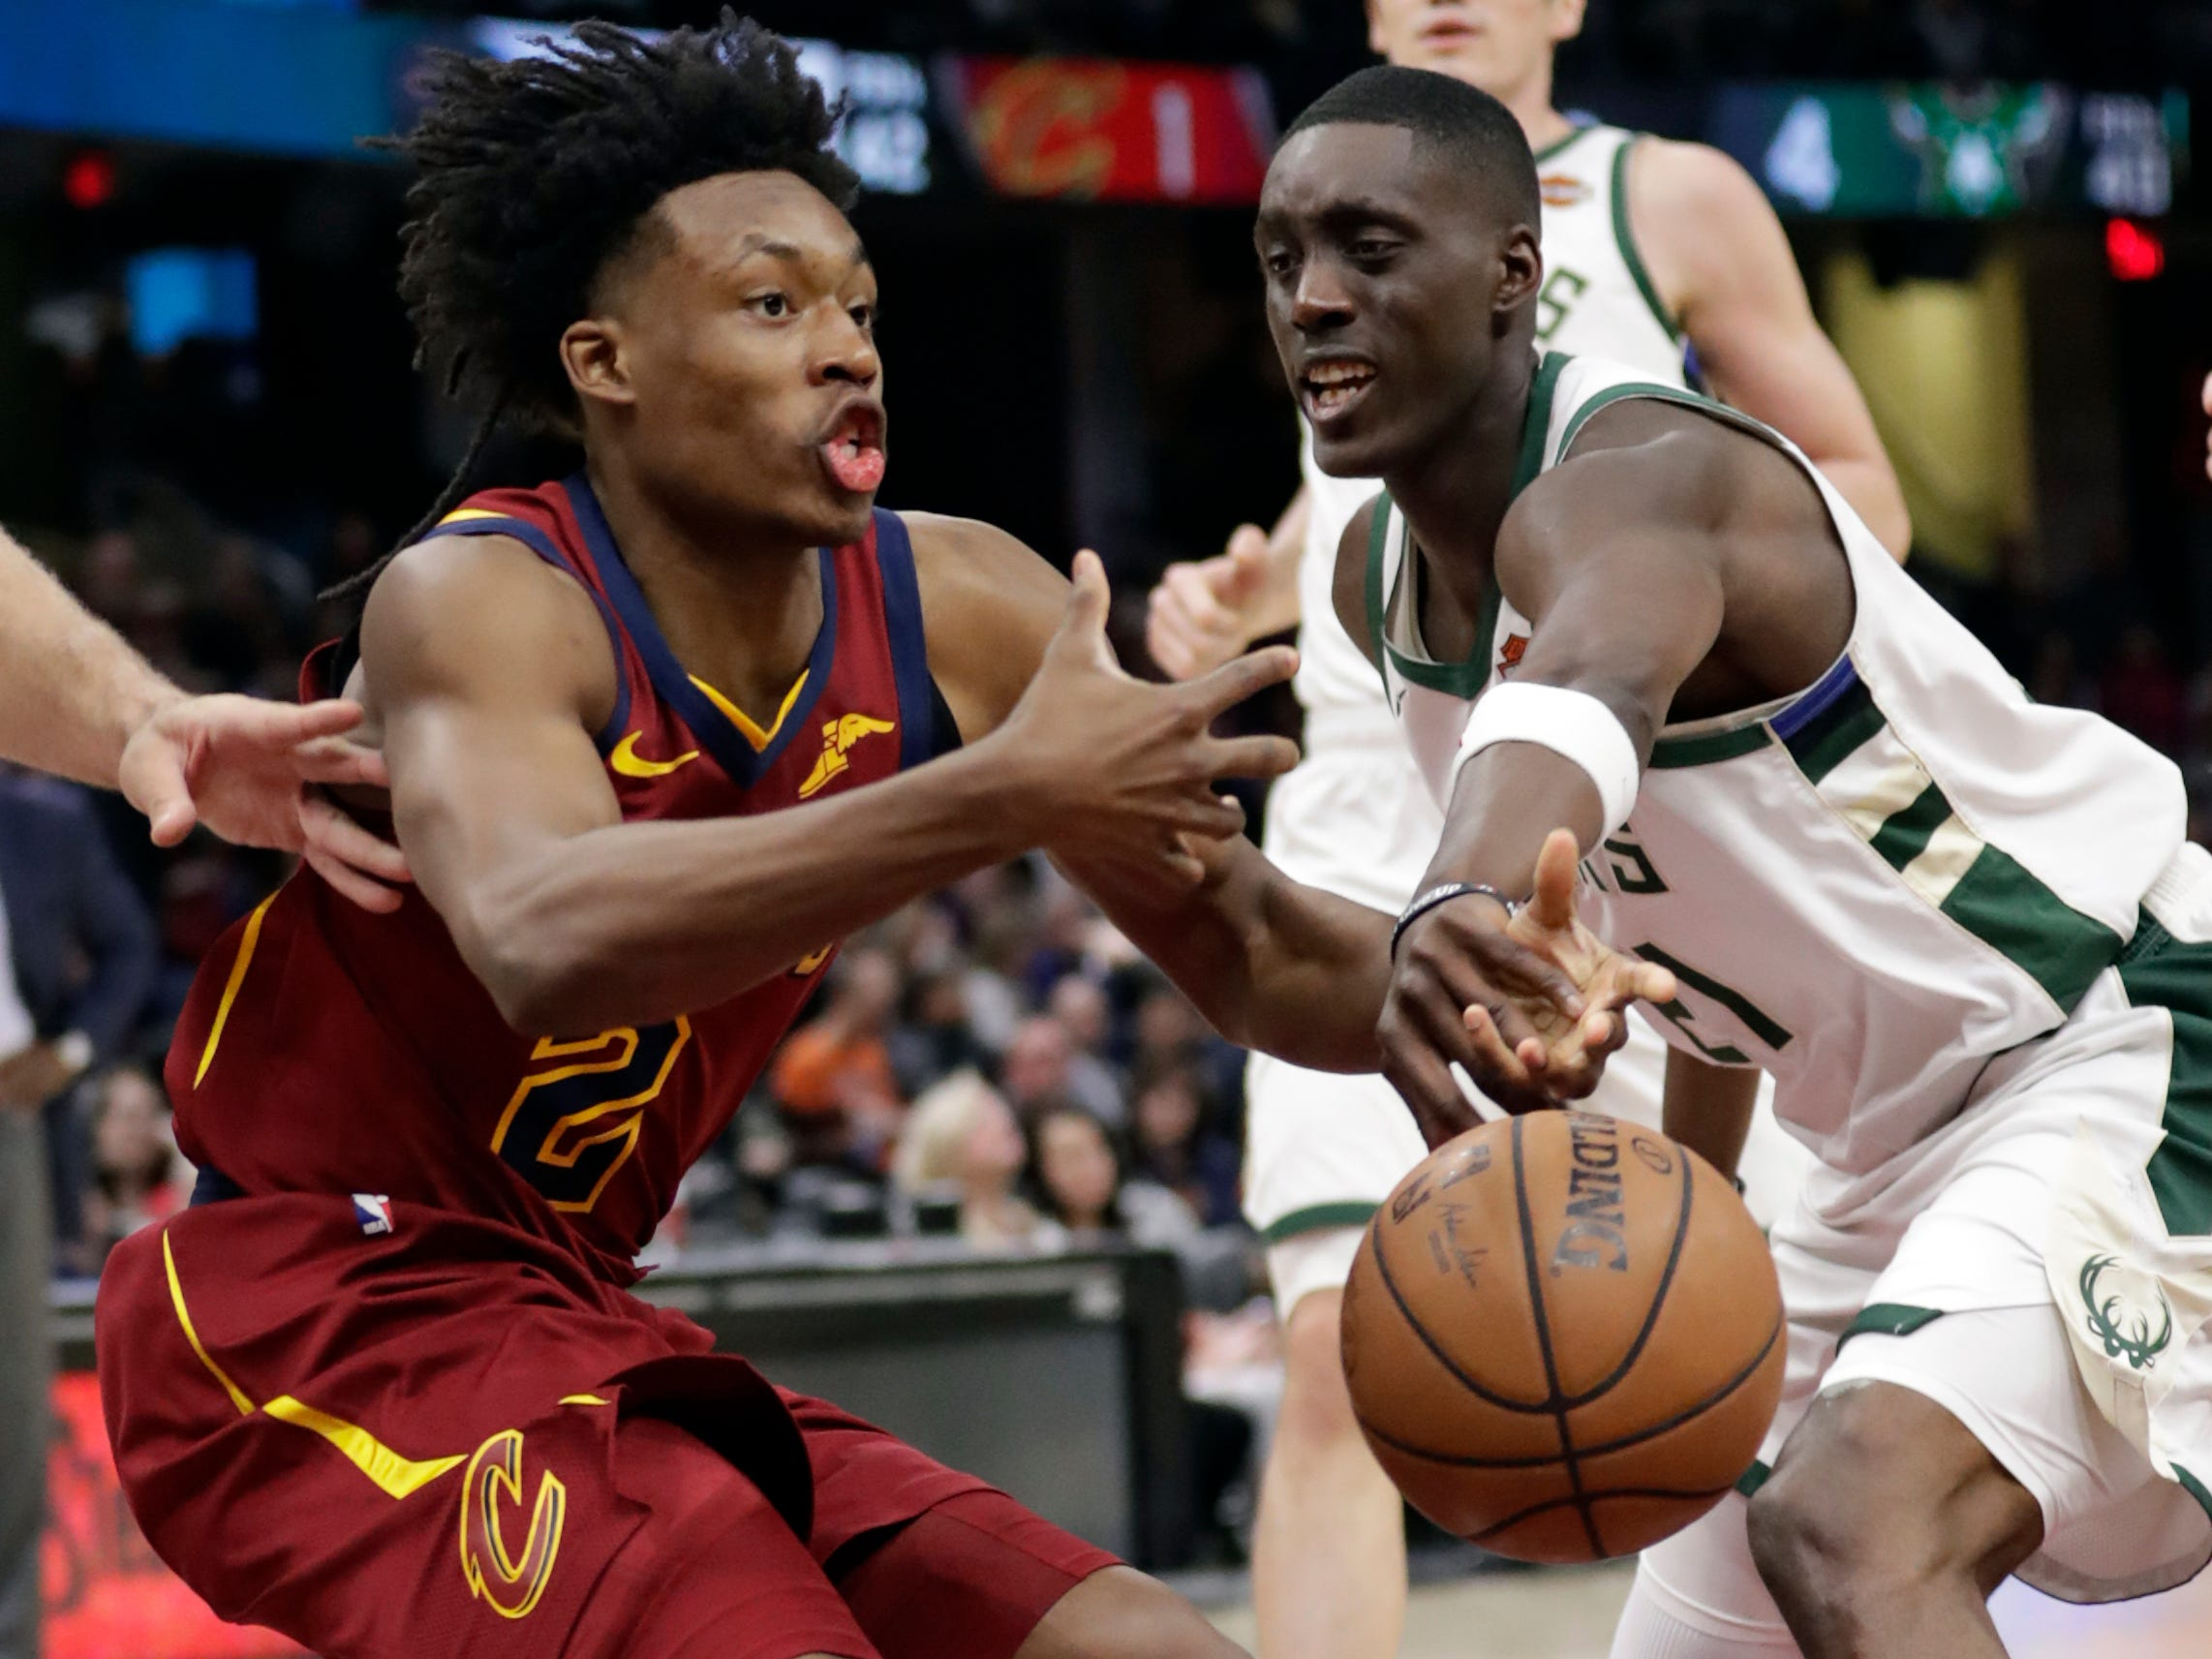 Bucks guard Tony Snell cleanly knocks the ball out of the hands of Cavaliers guard Collin Sexton during the second half.